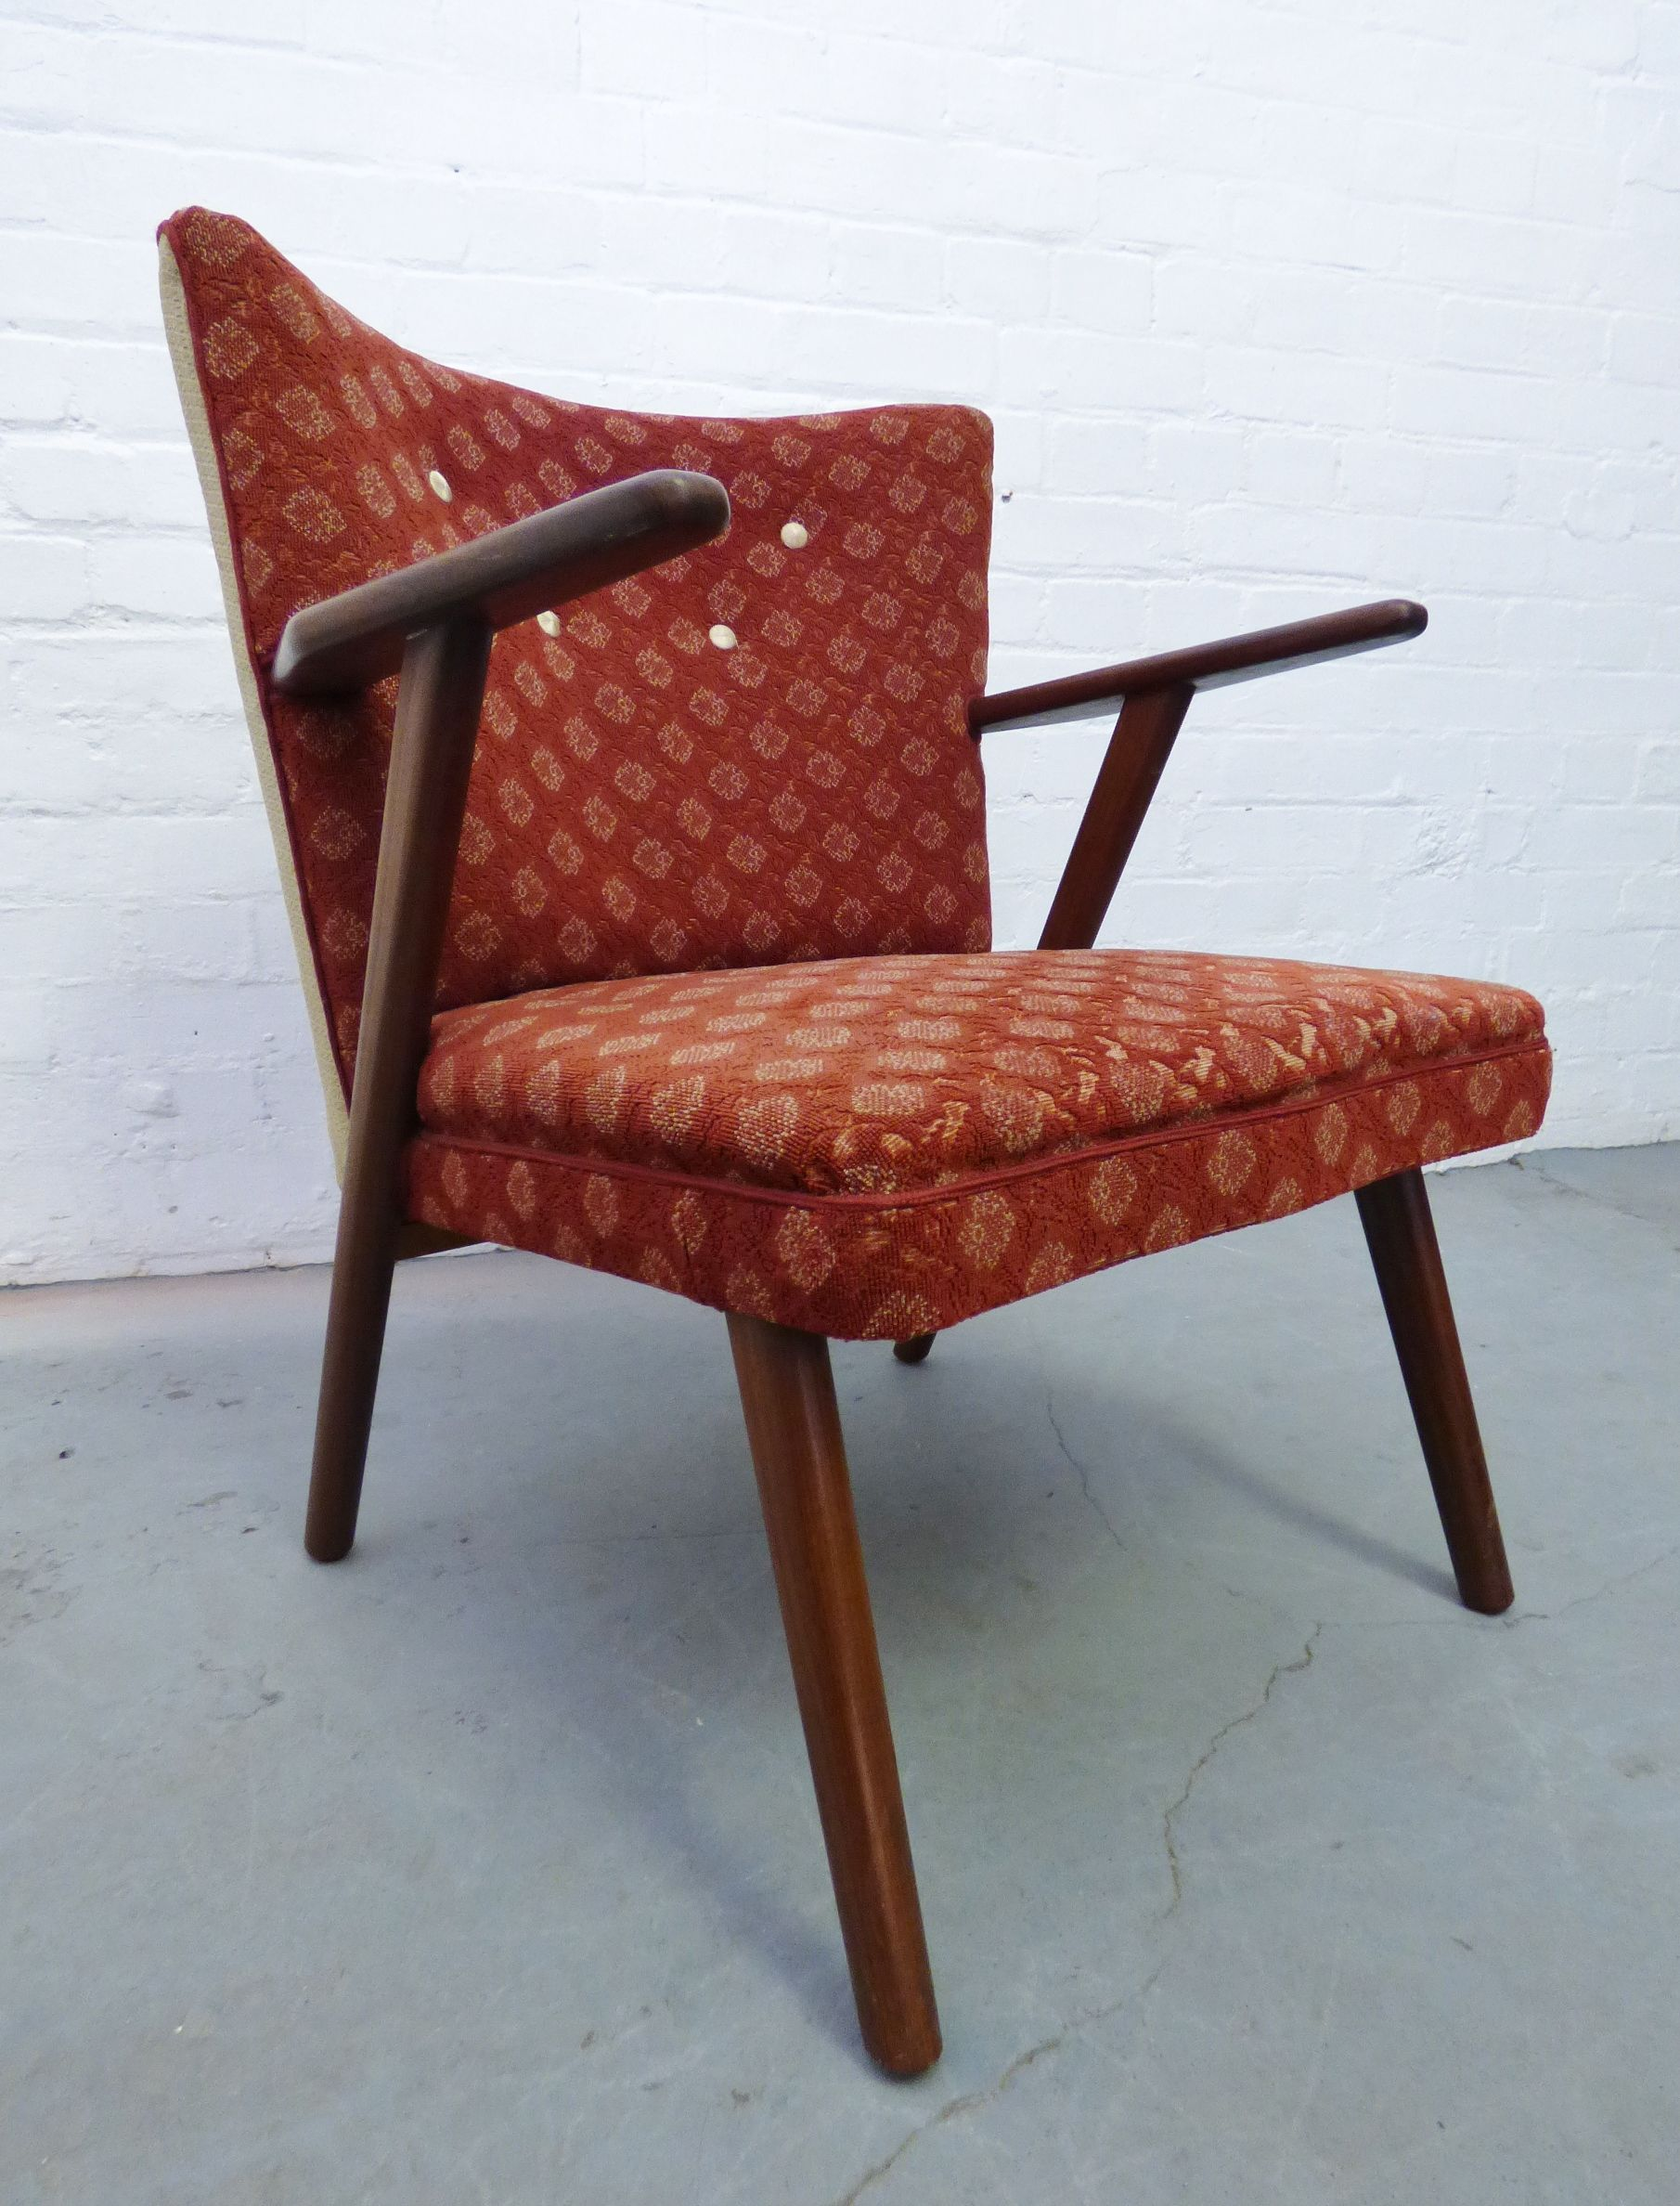 1950s Red Tail Chair Www Archivefurniture Co Uk Archive Furniture Danish